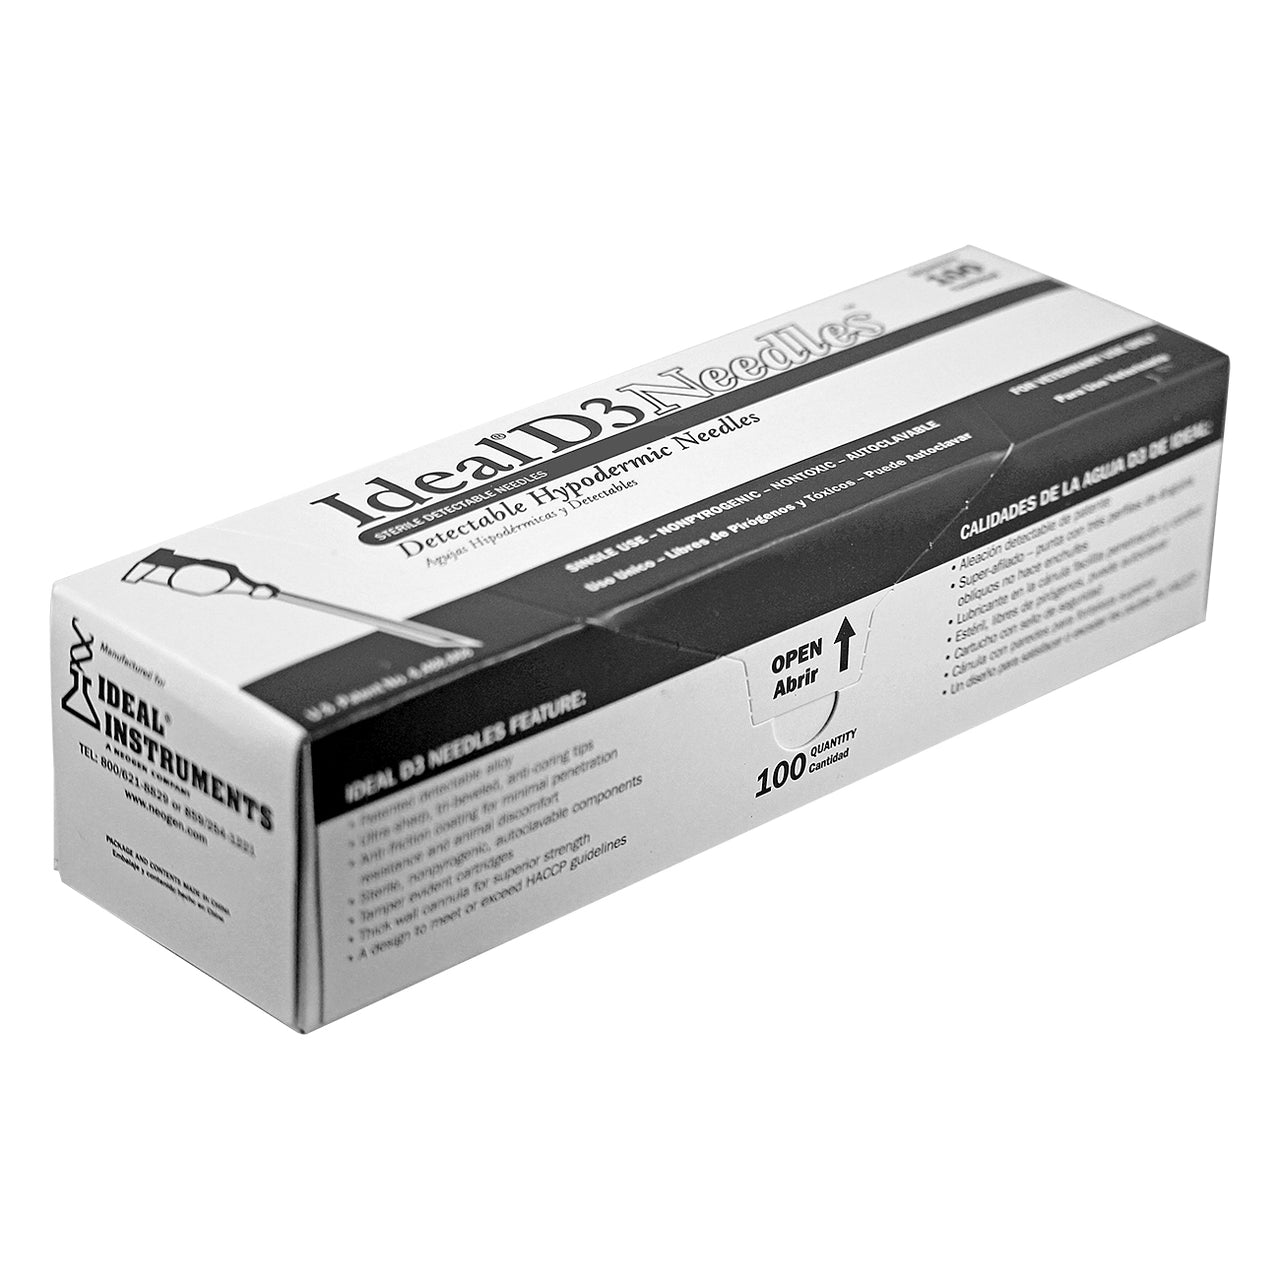 Ideal aluminum hub needle (100 per box) 18 X 1